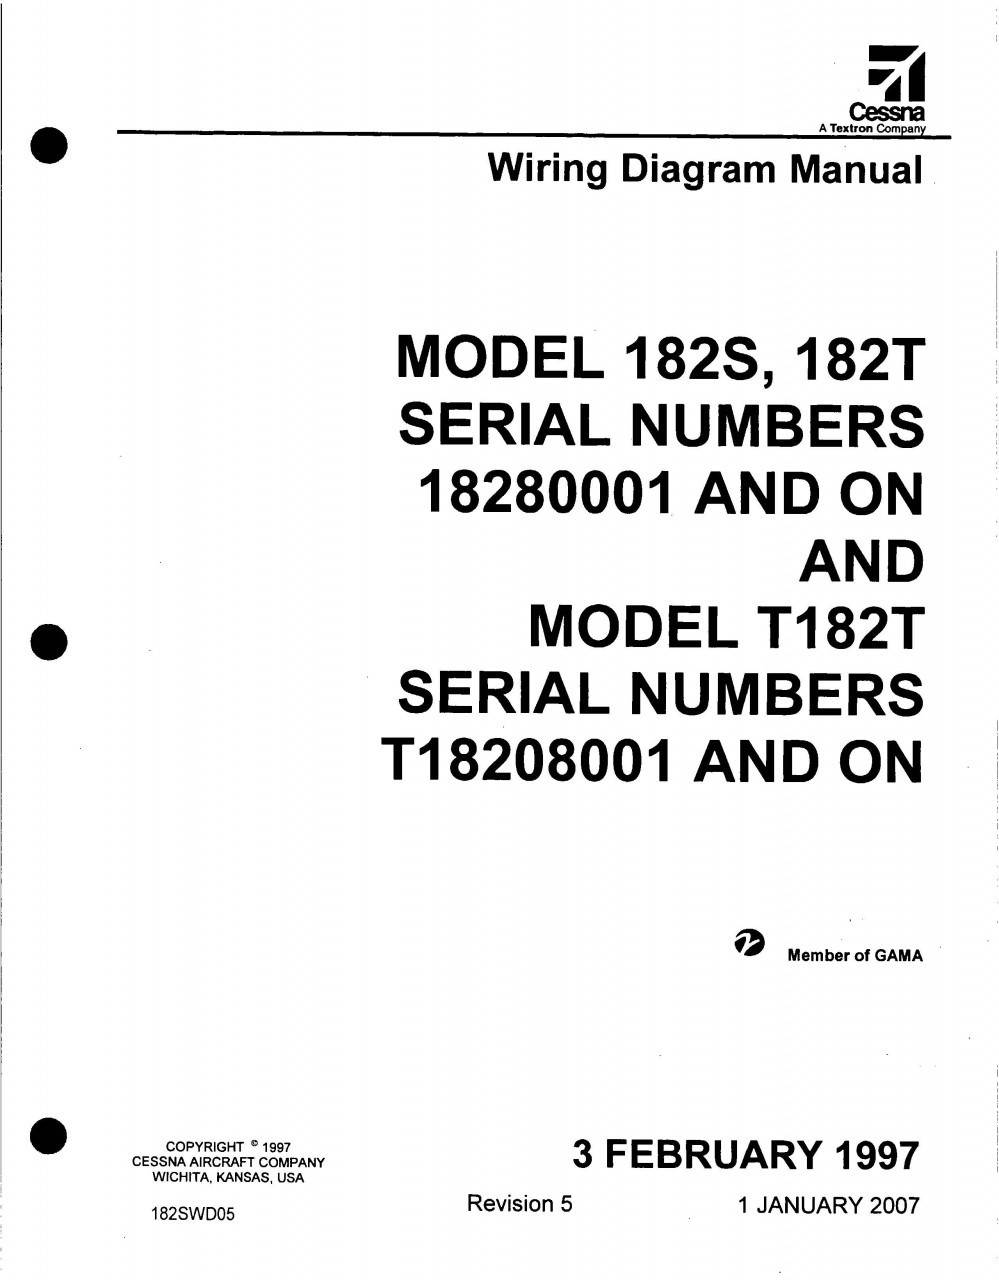 medium resolution of cessna 182 wiring diagram electrical manual 182s 182t 182swd download alternator electrical diagram cessna 150 electrical